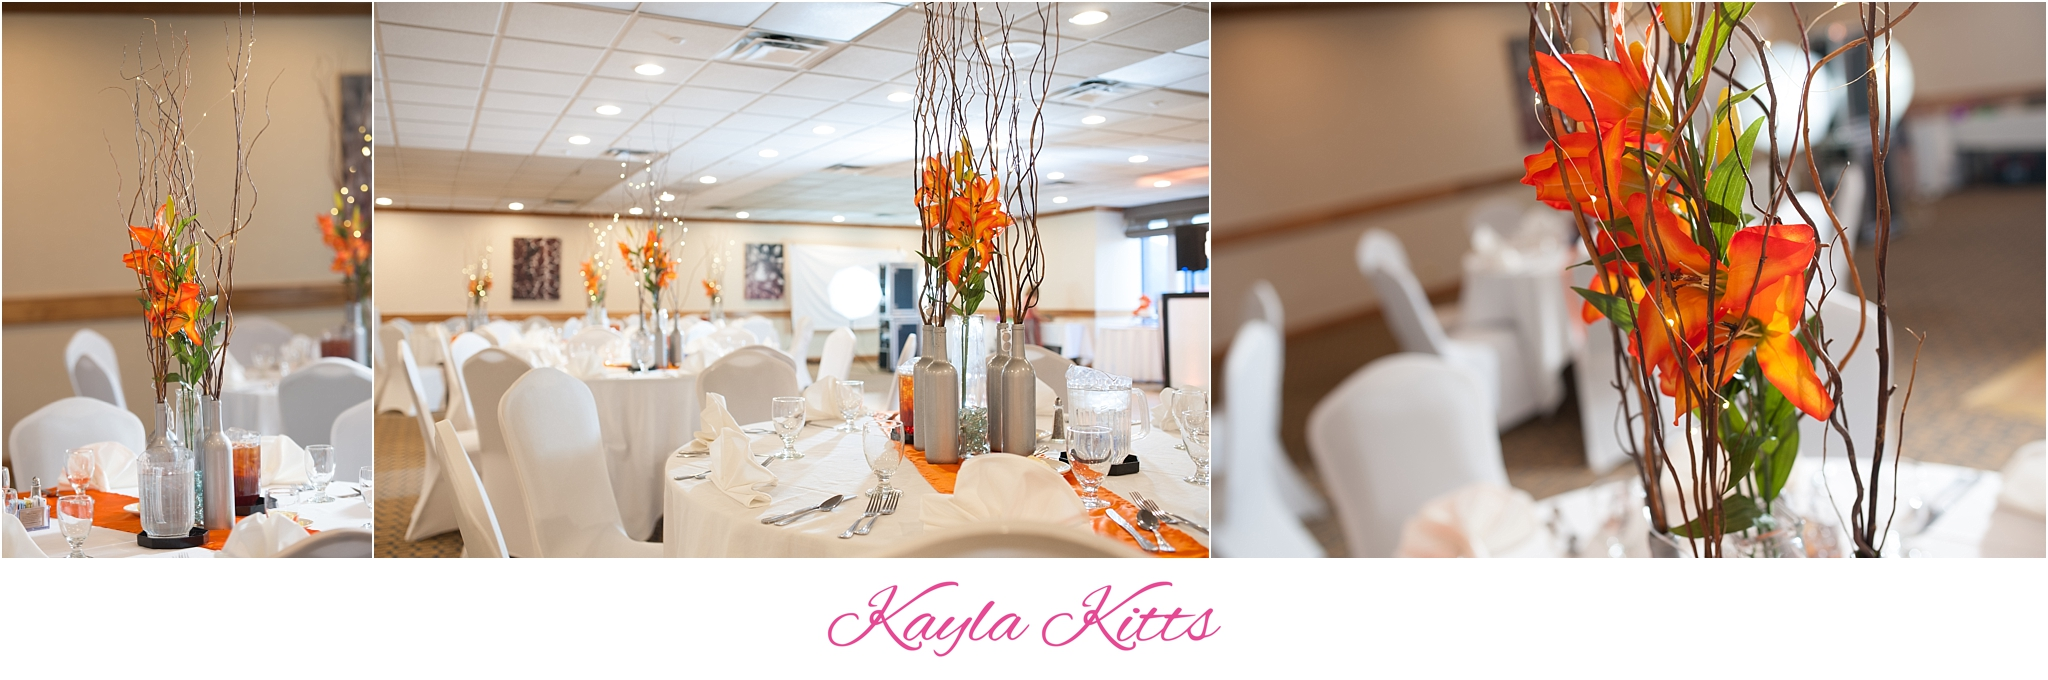 kayla kitts photography - albuquerque wedding photographer - albuquerque wedding photography - albuquerque venue - casa de suenos - hotel albuquerque wedding - new mexico wedding photographer - los poblanos wedding_0011.jpeg